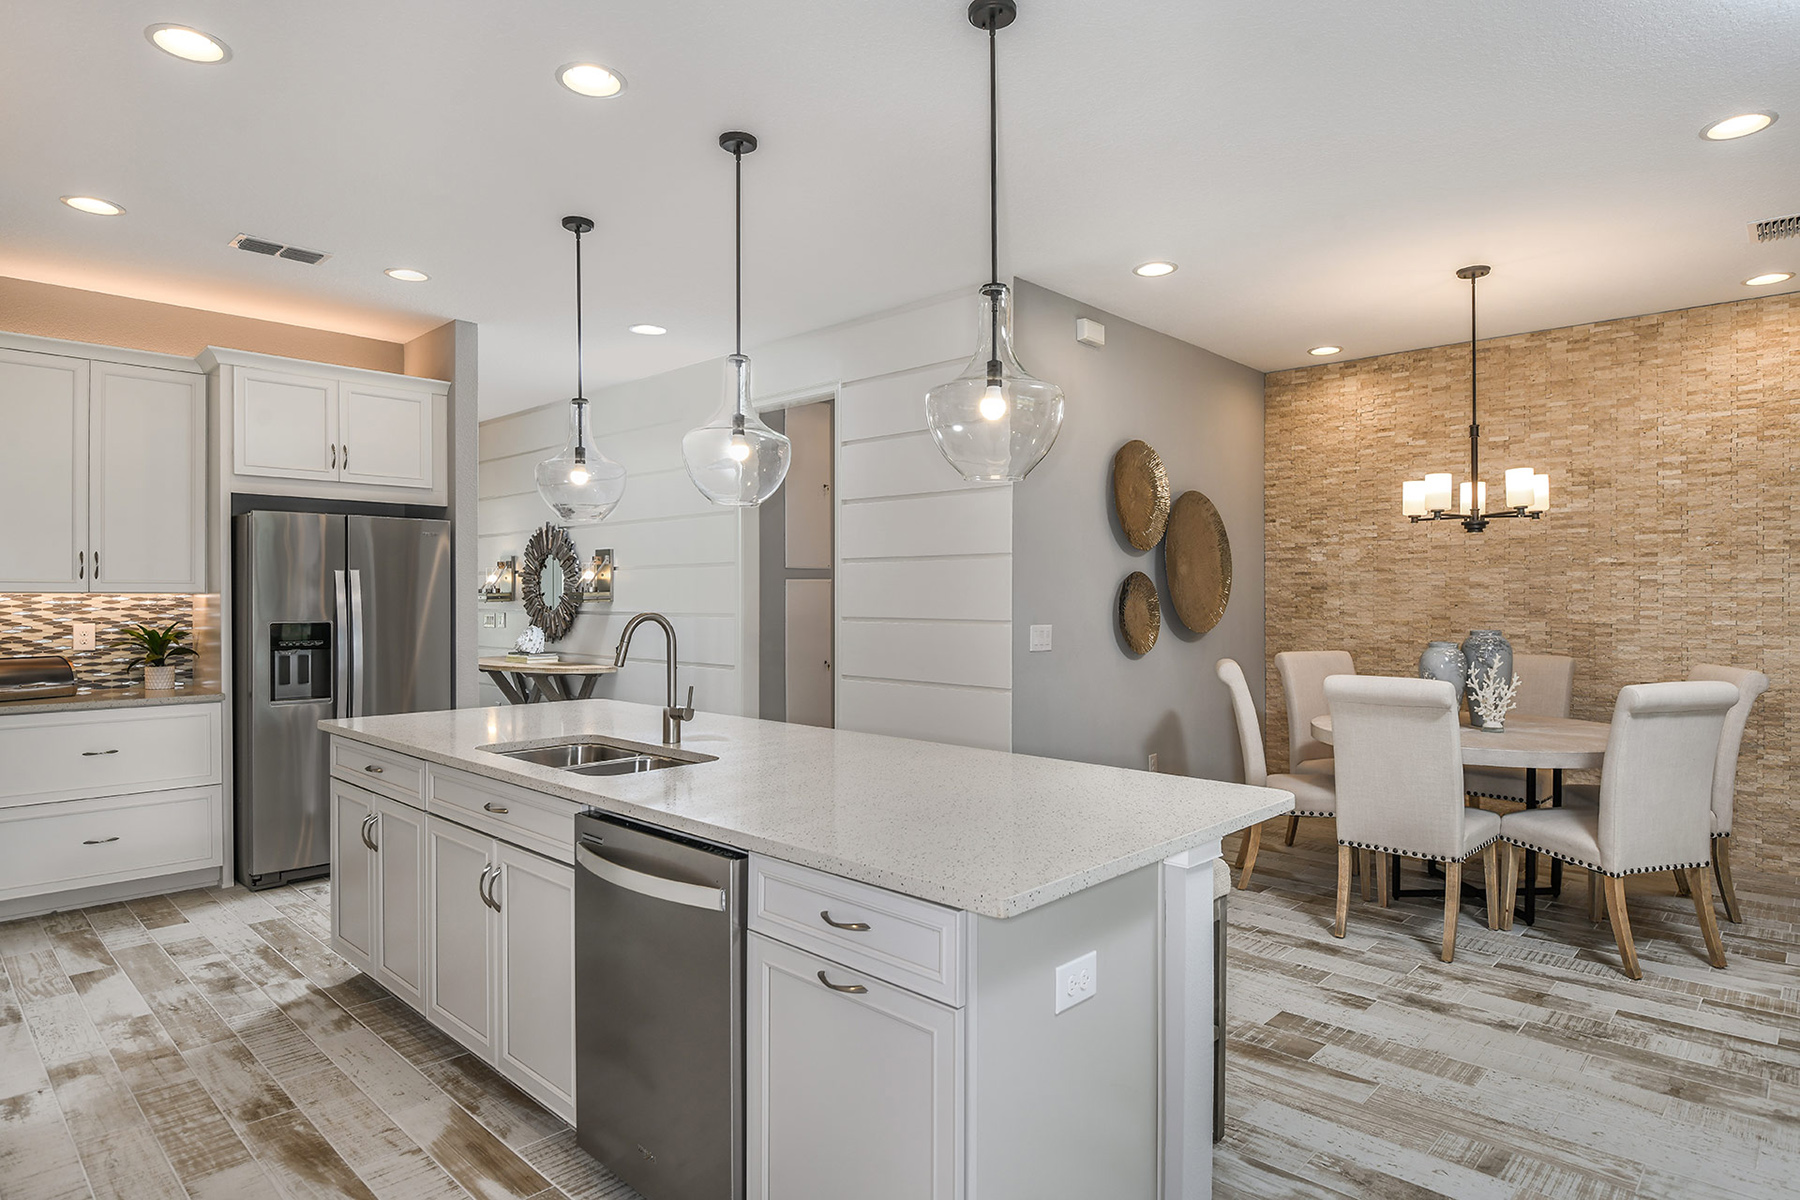 Coquina Plan Kitchen at Boyette Park in Riverview Florida by Mattamy Homes